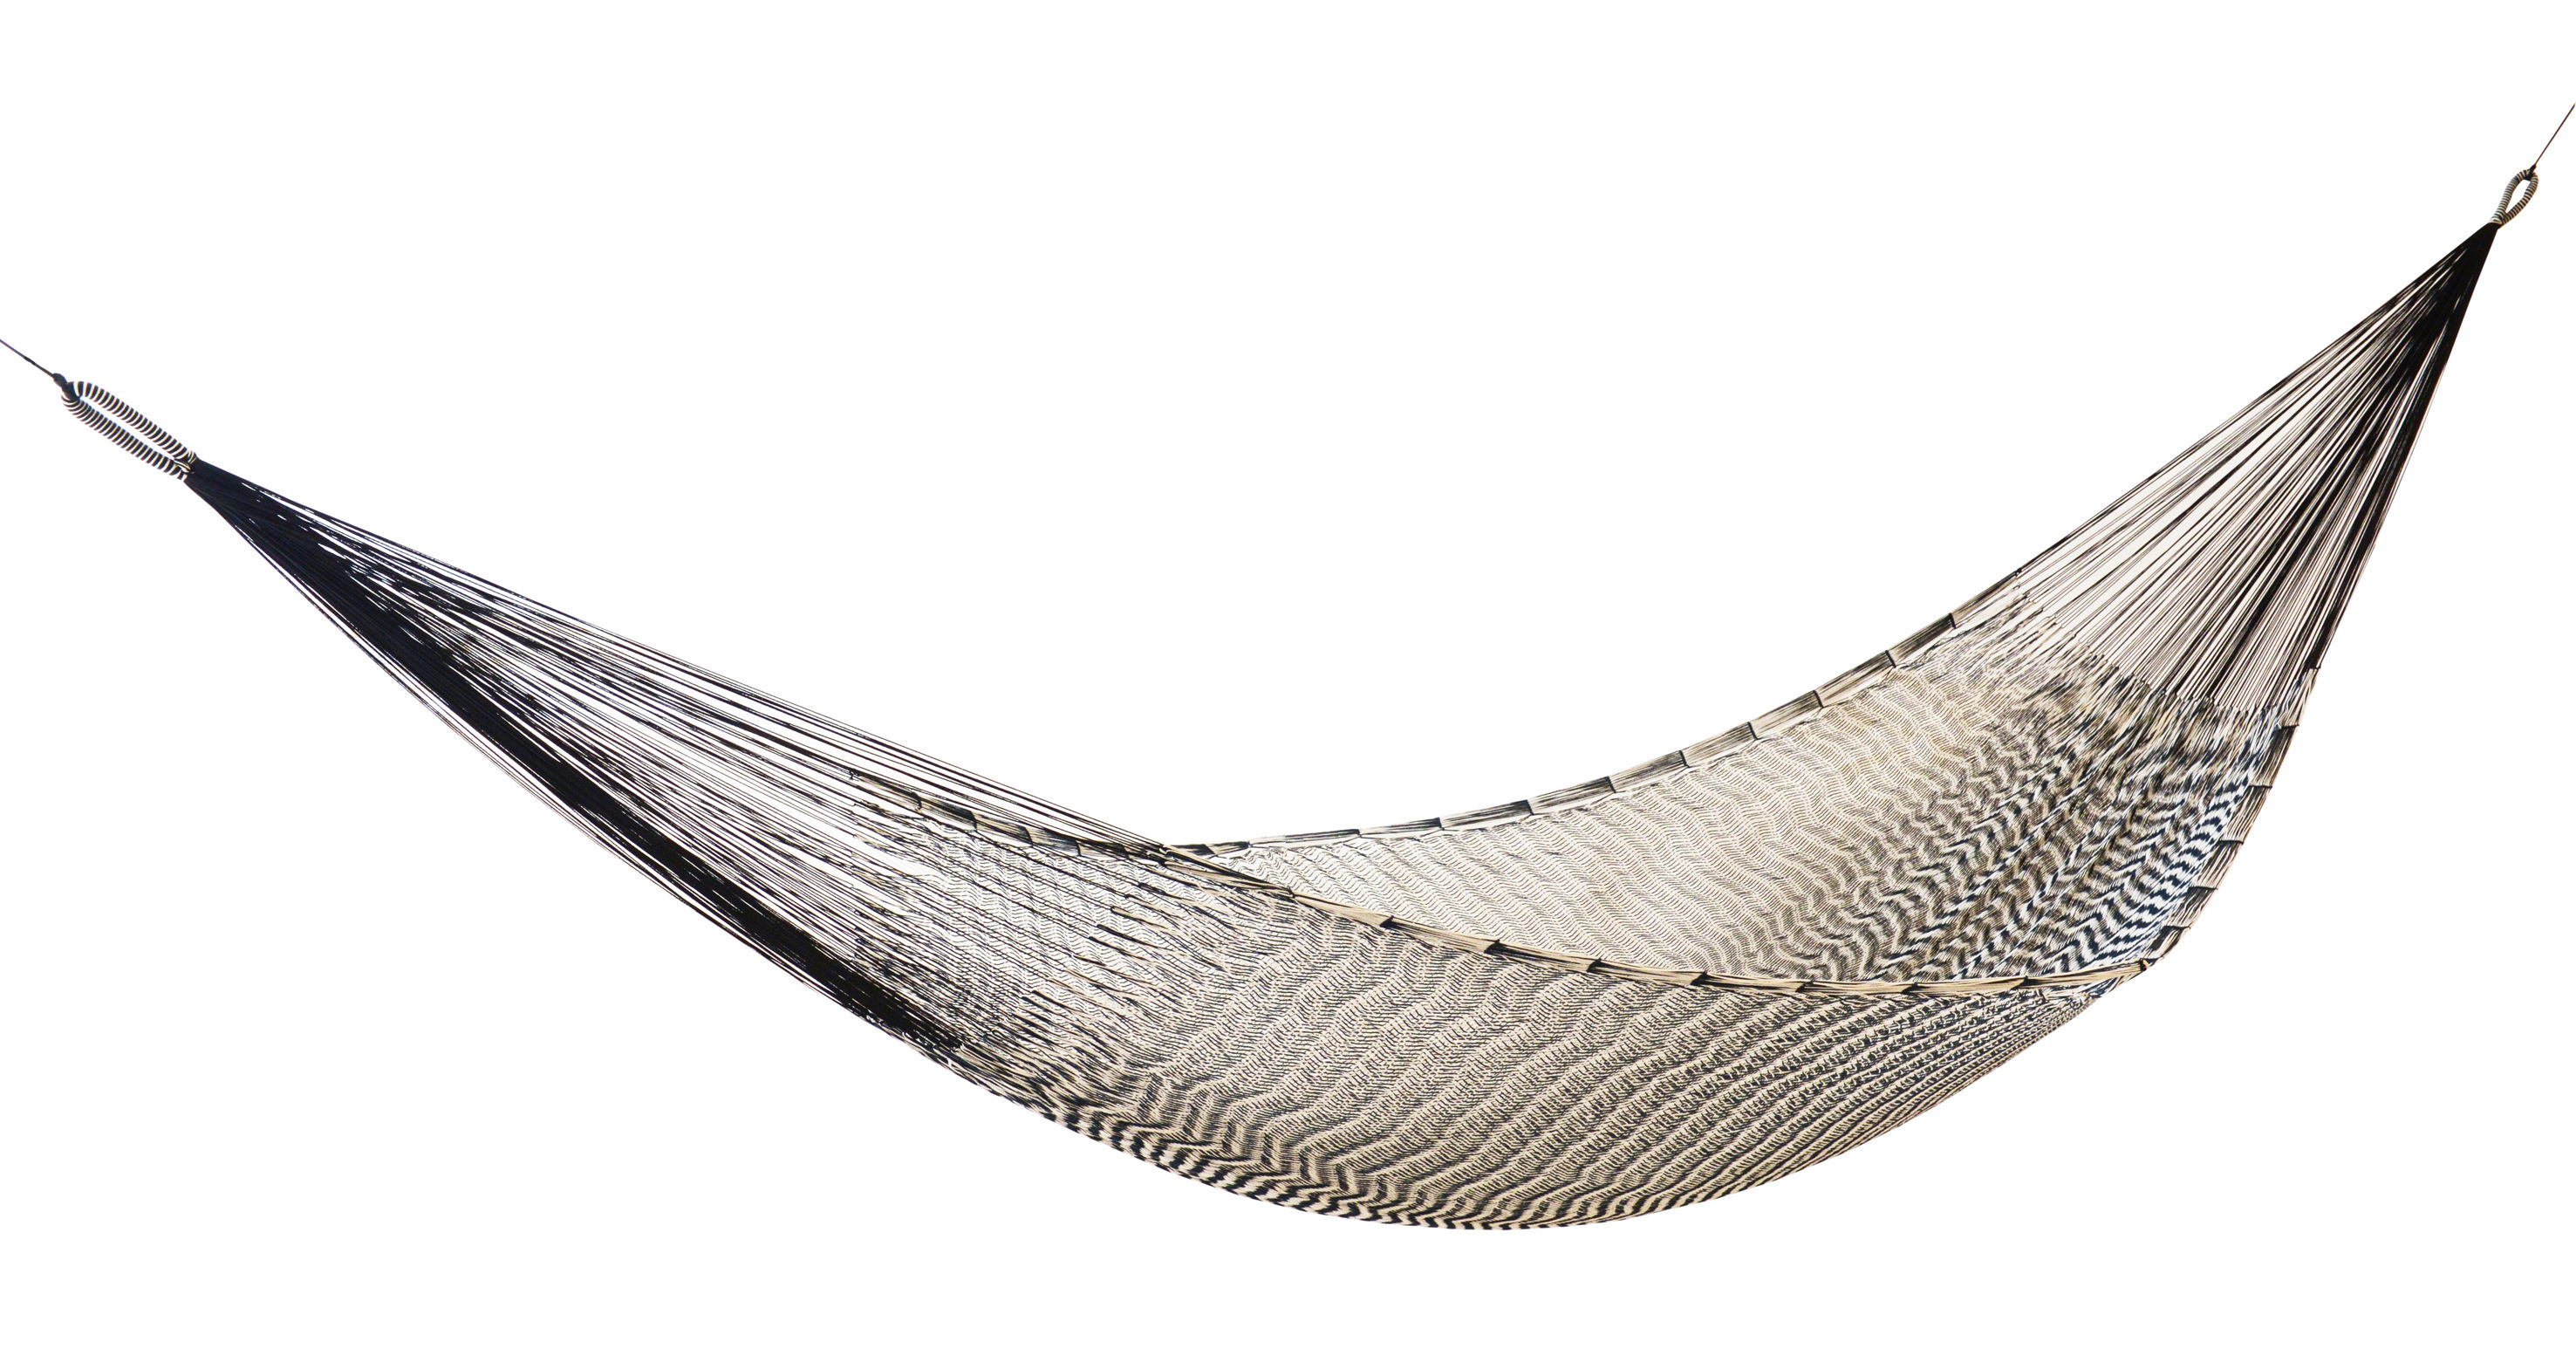 Outdoor - Sun Loungers & Hammocks - Ama Hammock - Hand made in Mexico by OK Design pour Sentou Edition - Black & White - Cotton, Nylon